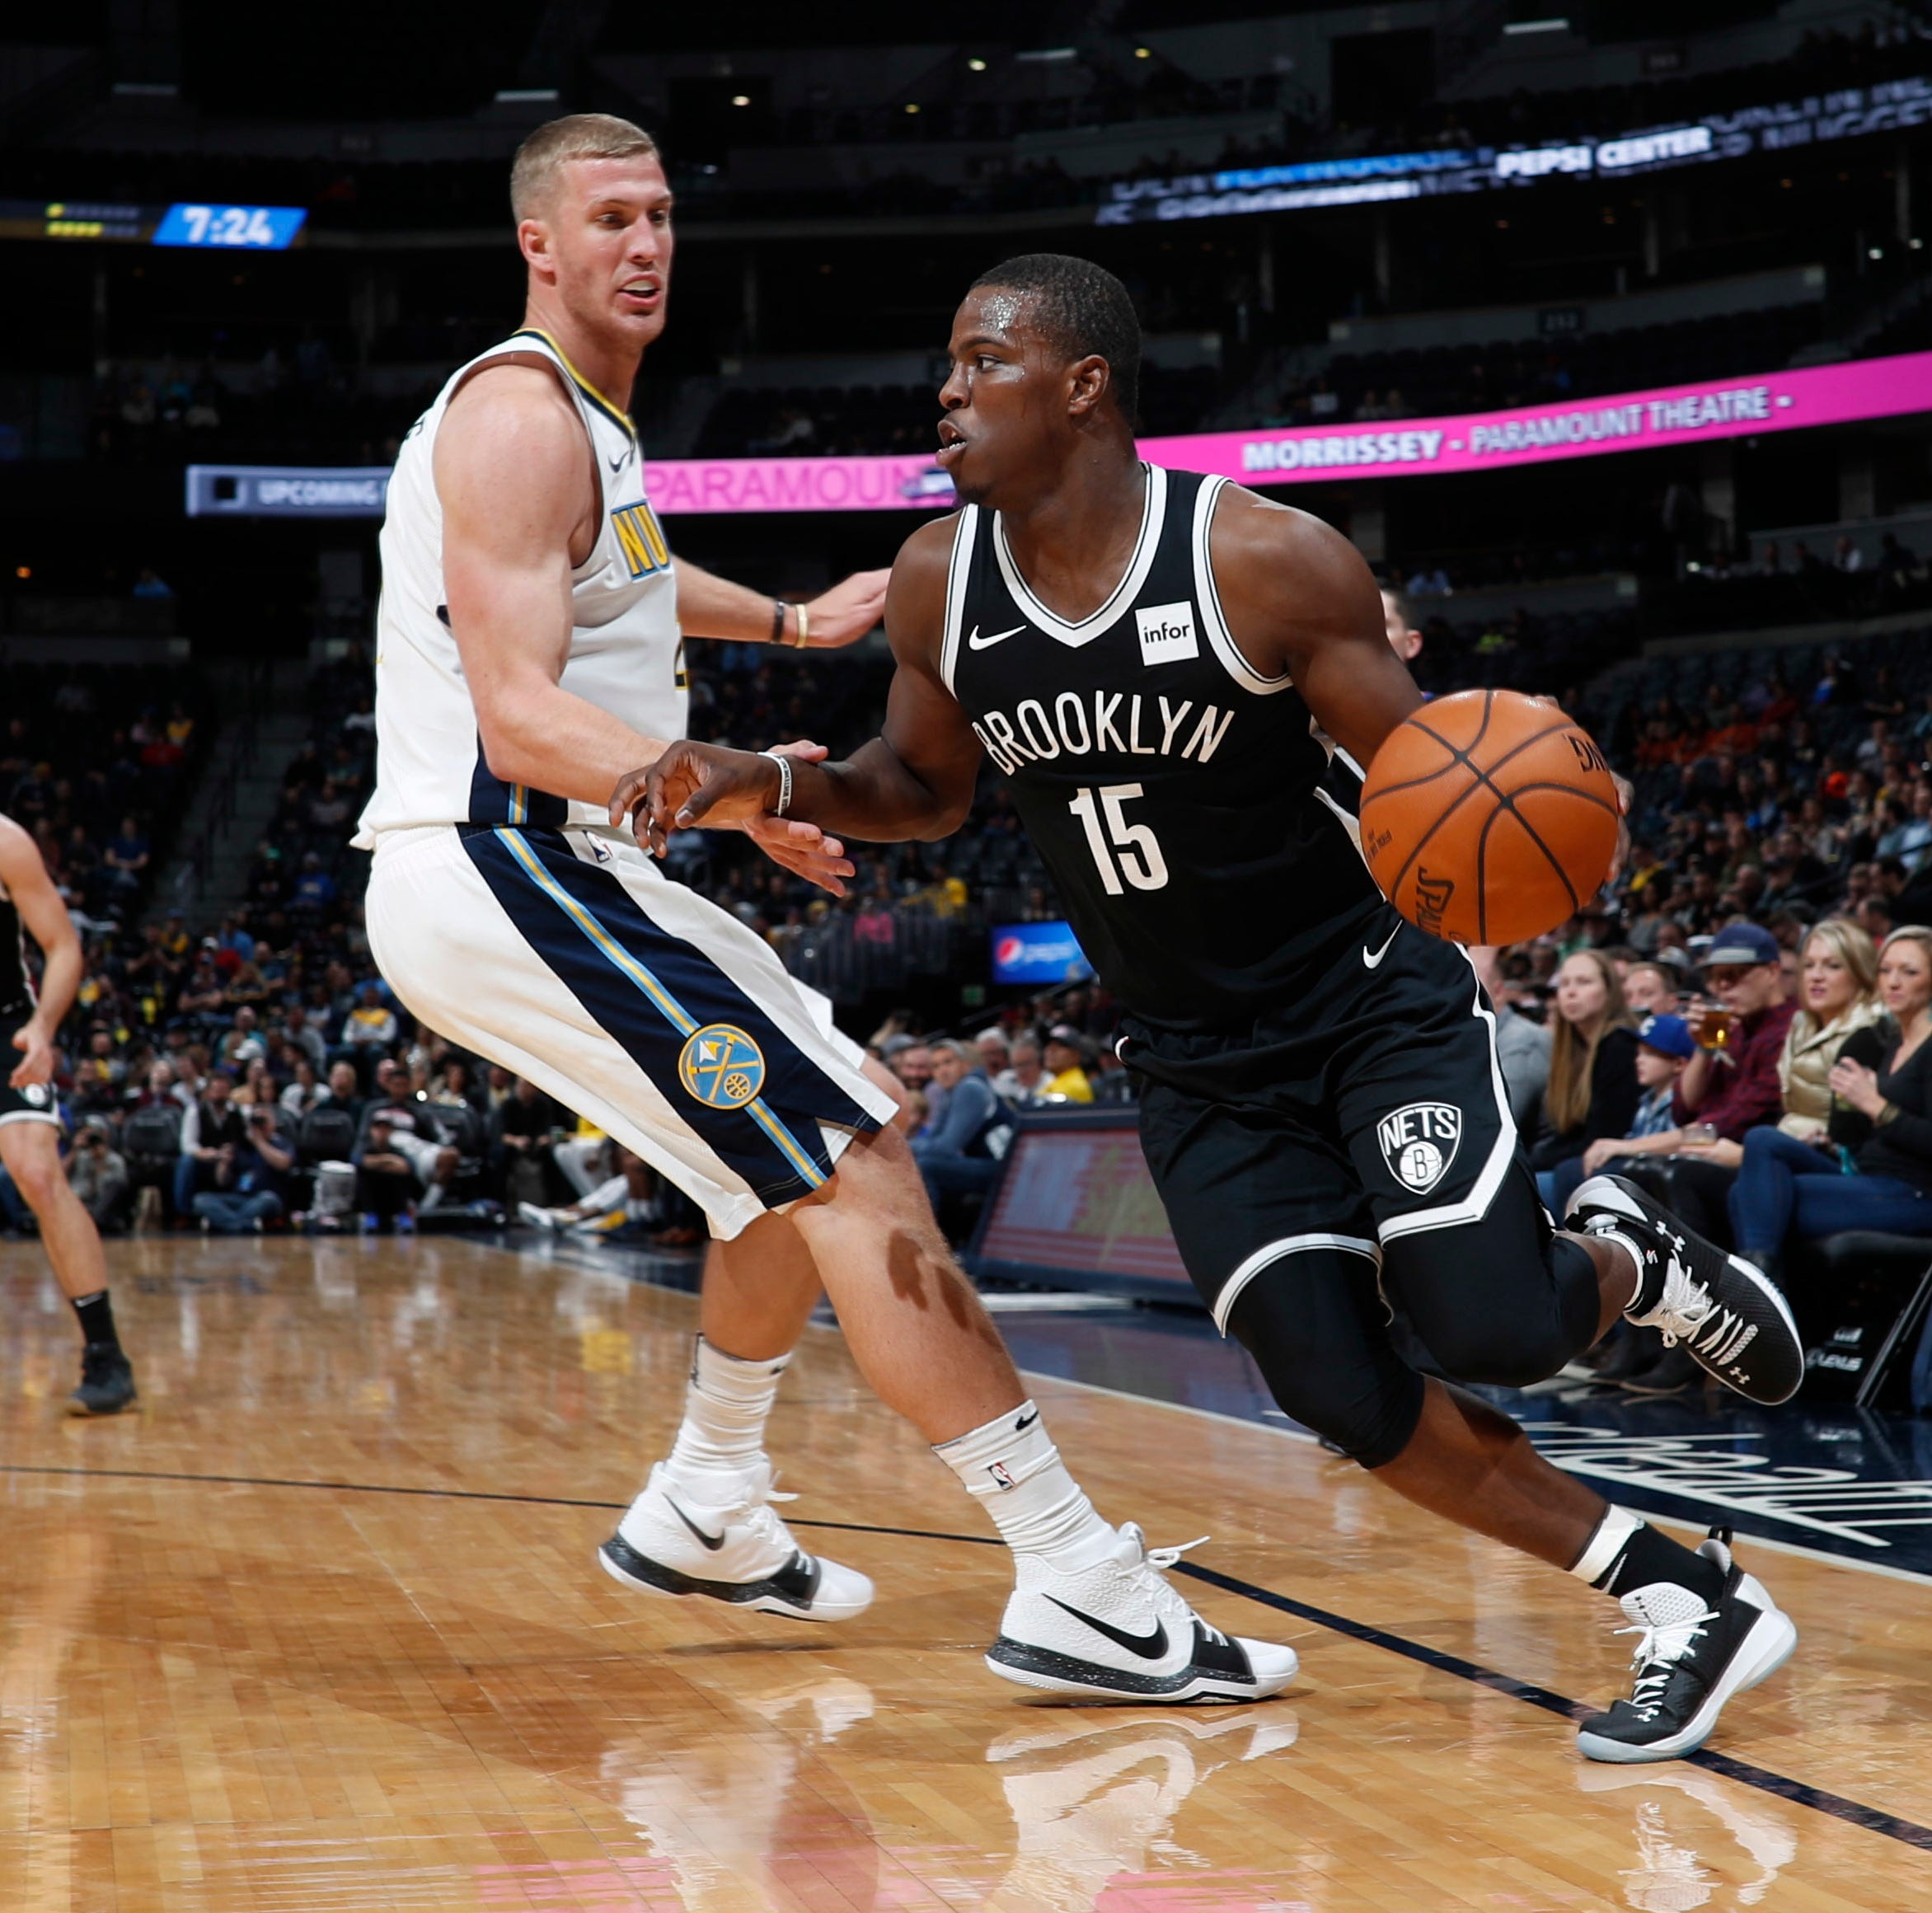 Pistons sign point guard Isaiah Whitehead